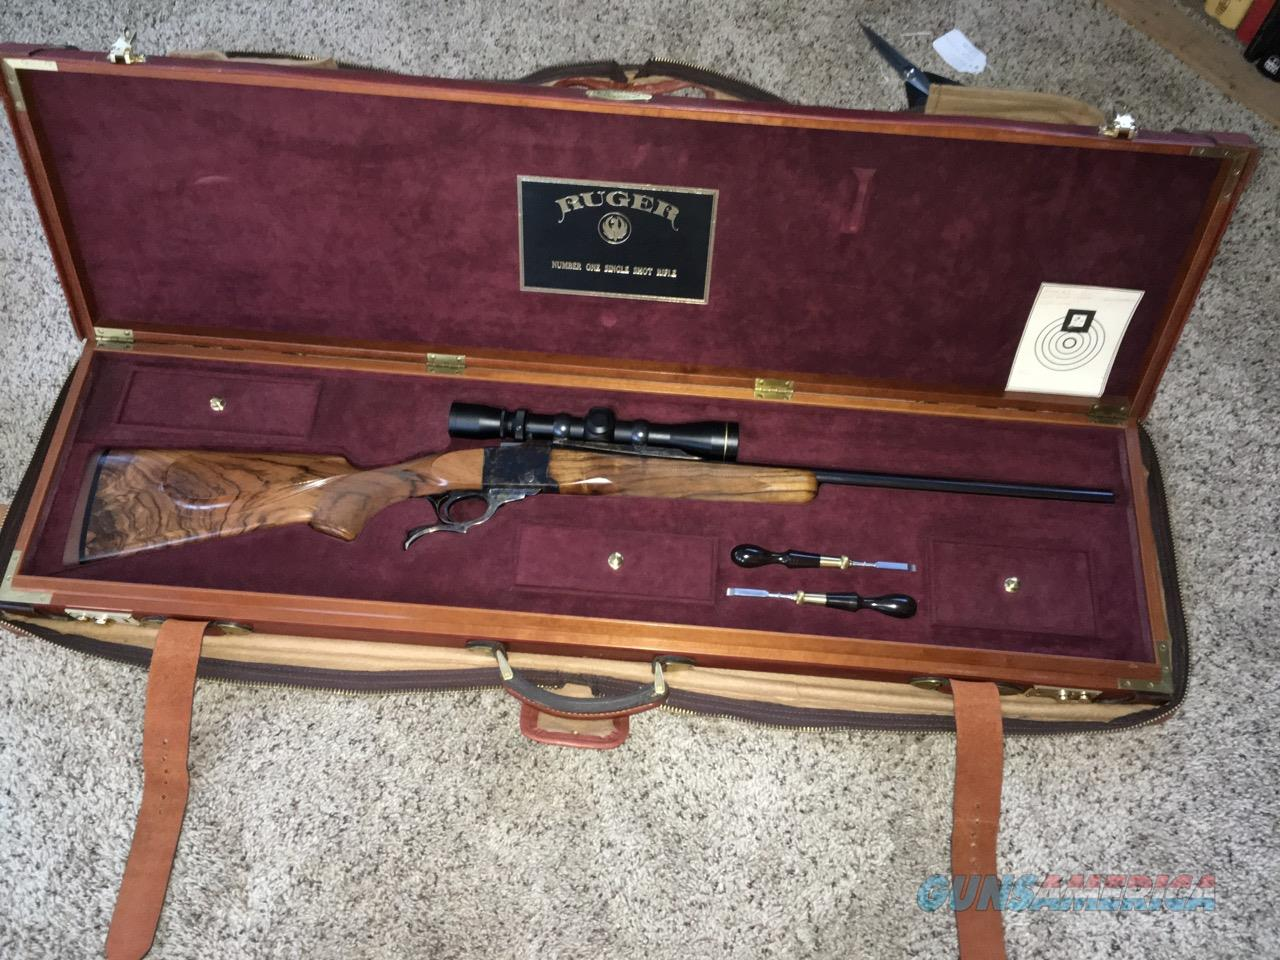 Ruger #1 22LR Custom w Huey case - Left or Right hand shooter  Guns > Rifles > Ruger Rifles > #1 Type